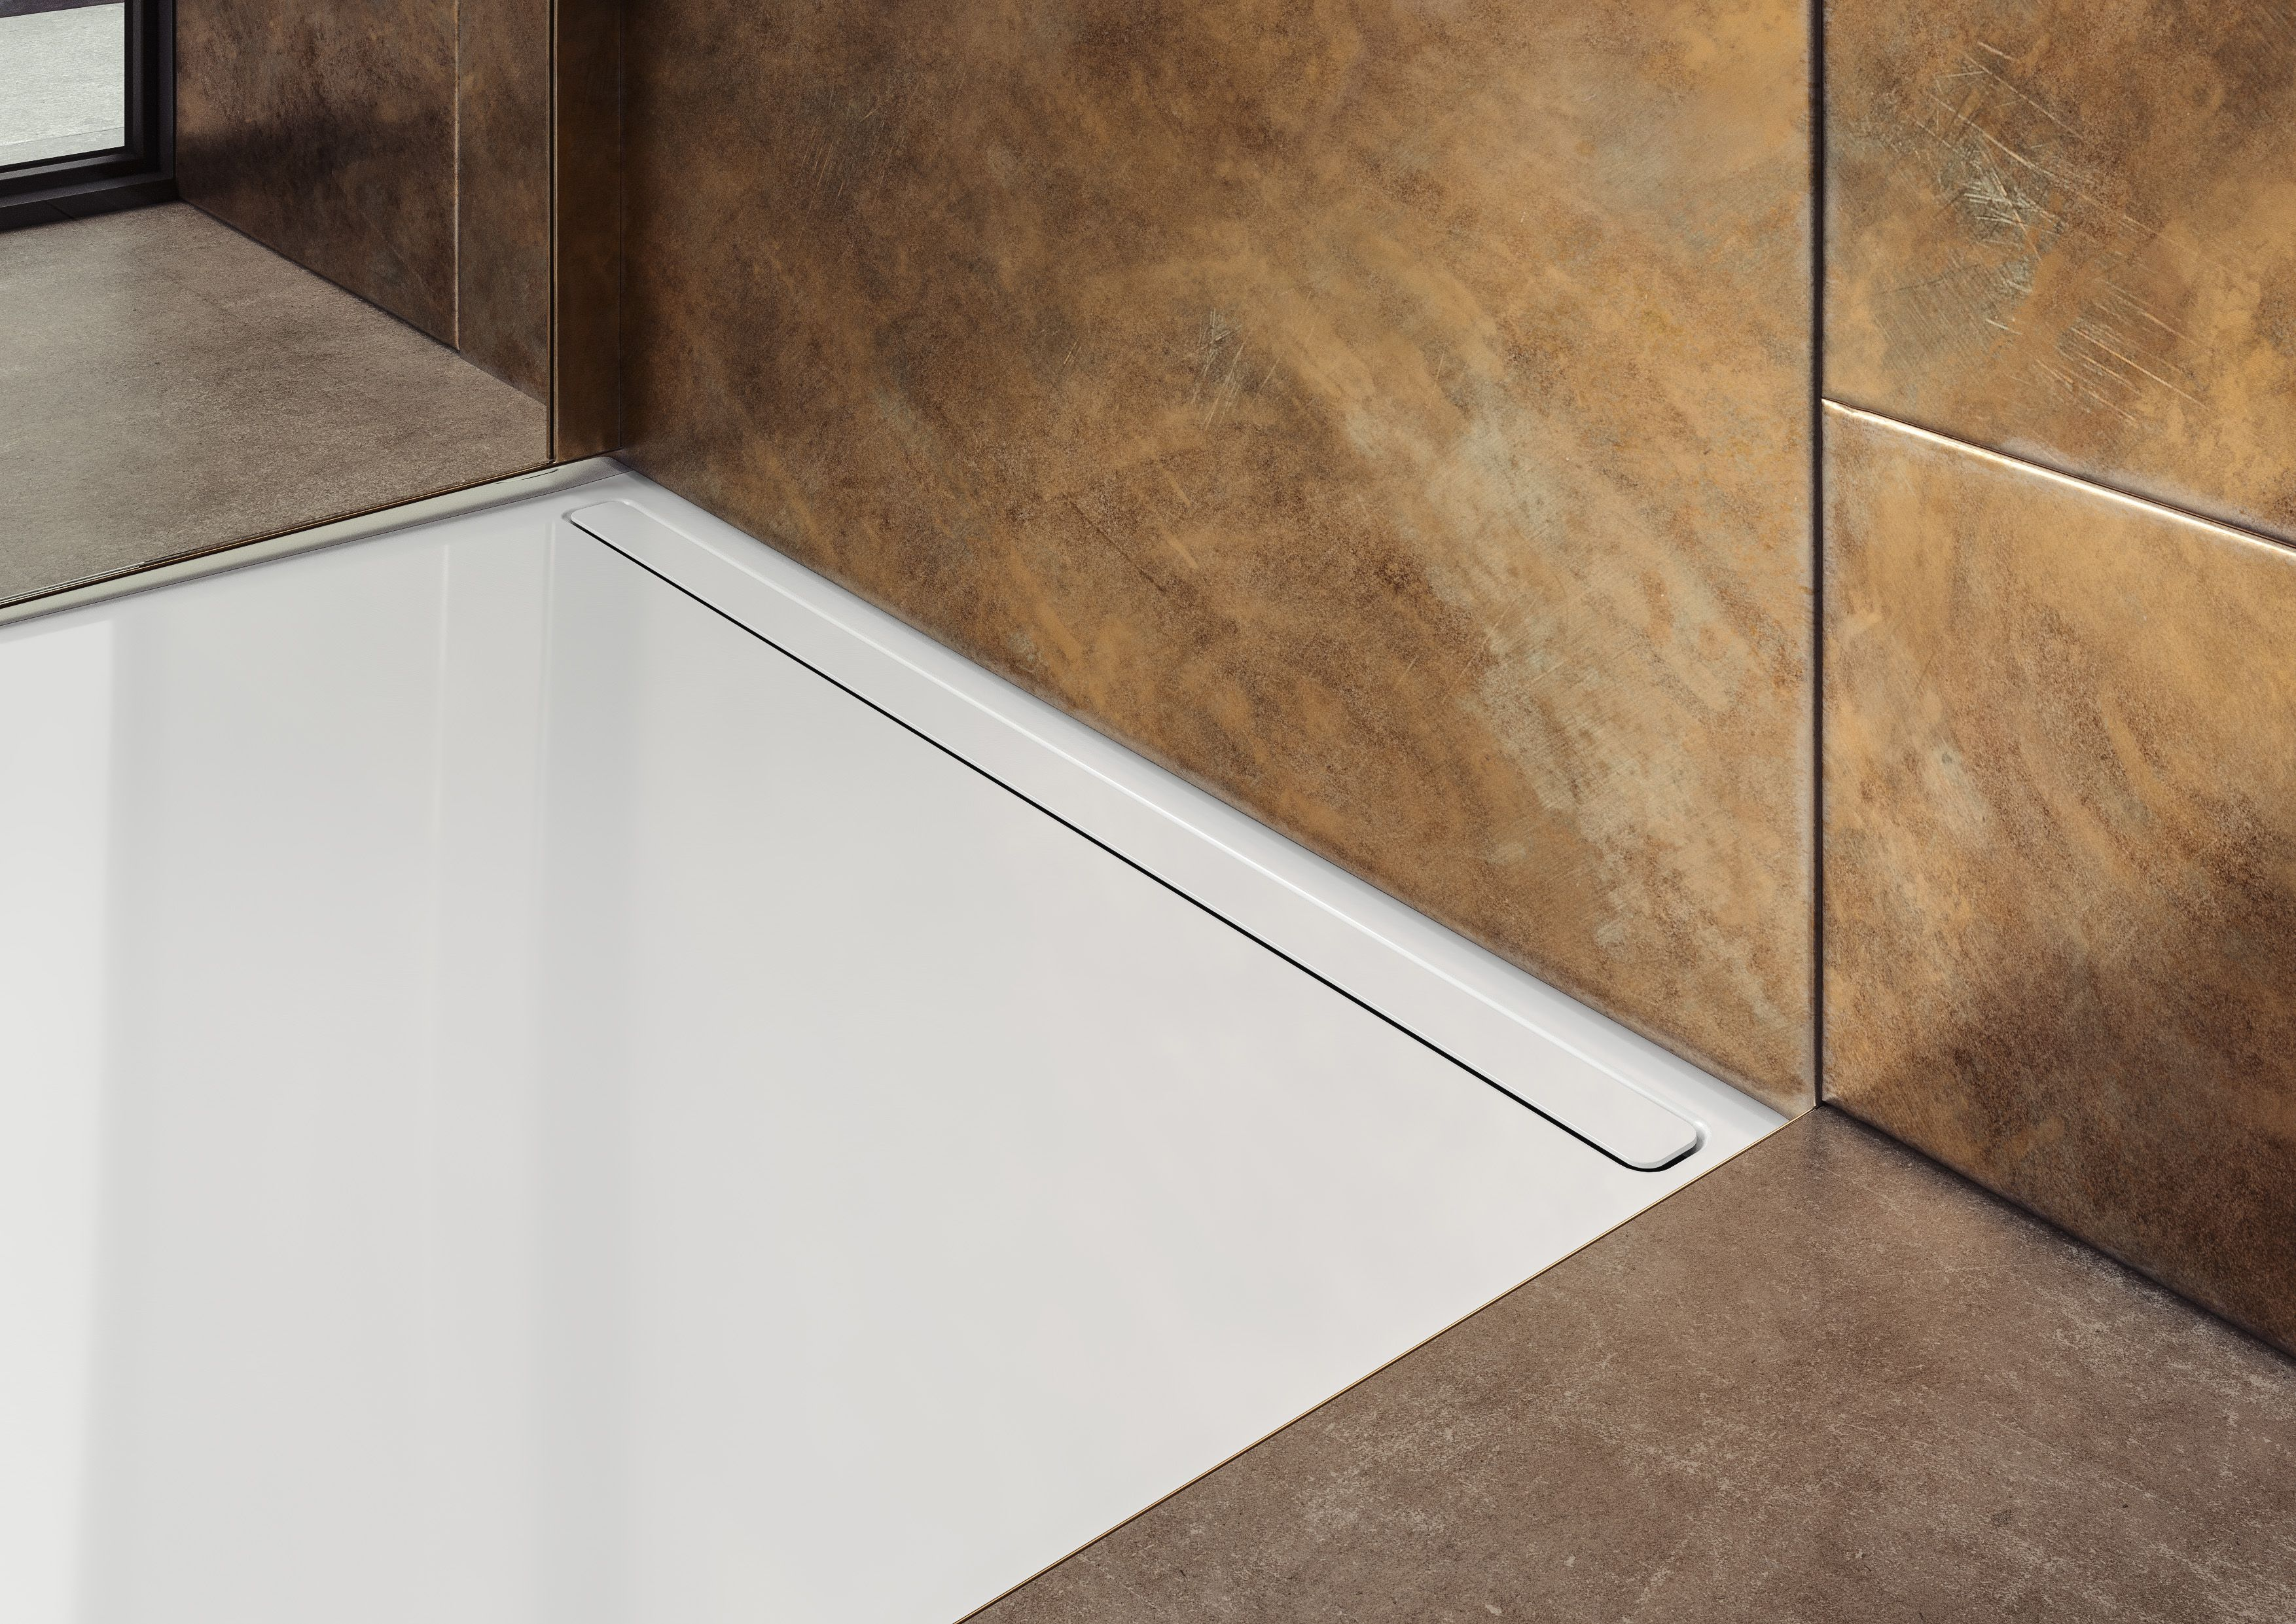 Duschtasse Reuter Nexsys Will Fit Into Bathrooms Of Every Size And Shape Proving That